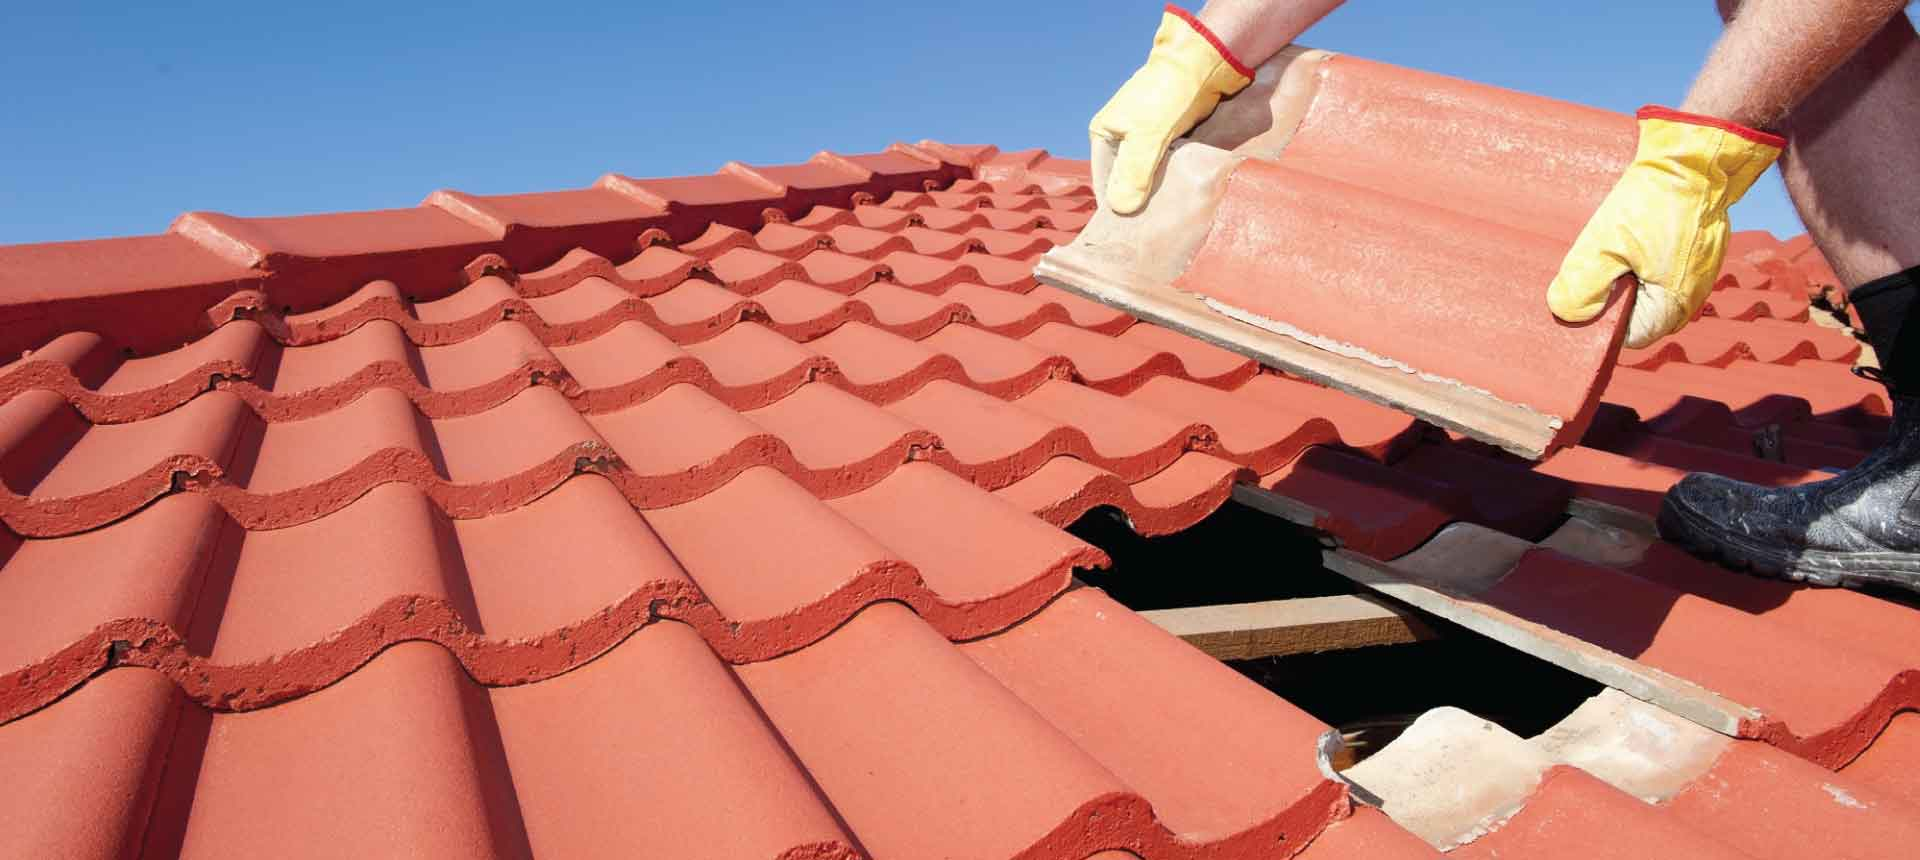 Roof Repair Phoenix   Ranked #1 Roofing Company In AZ